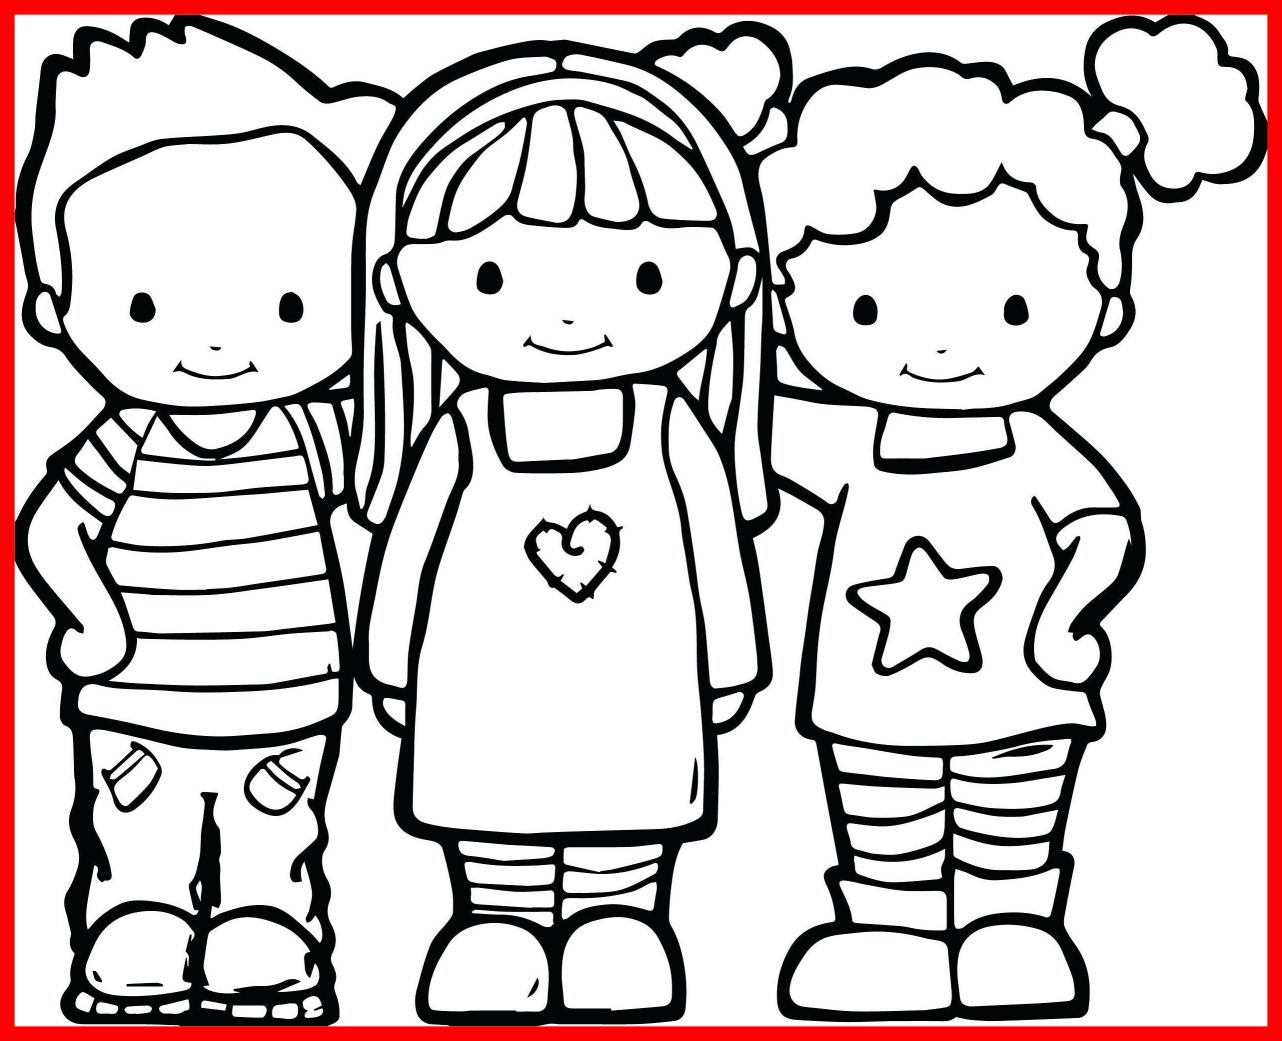 1282x1041 The Best Coloring Pages Surprising Friend Cool Pict For Yoohoo